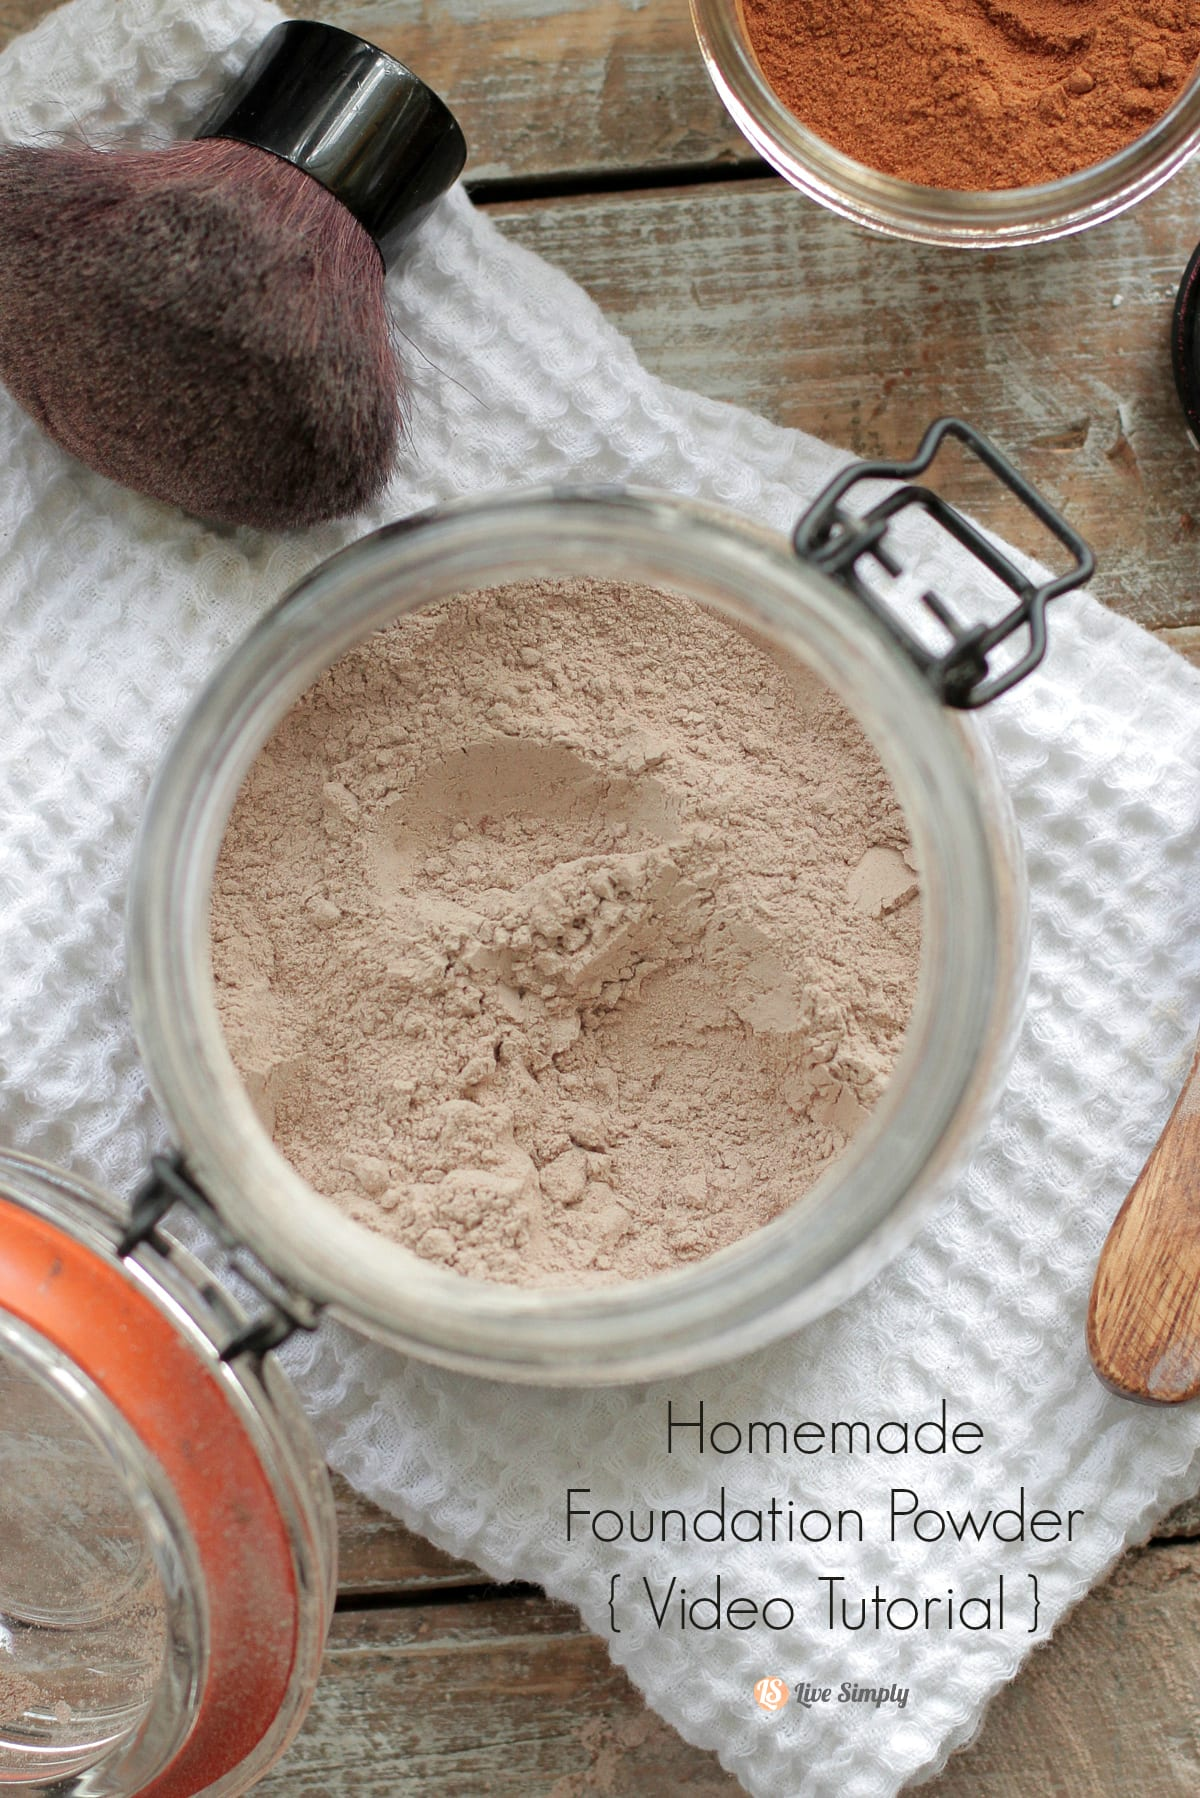 Homemade Foundation Powder Recipe